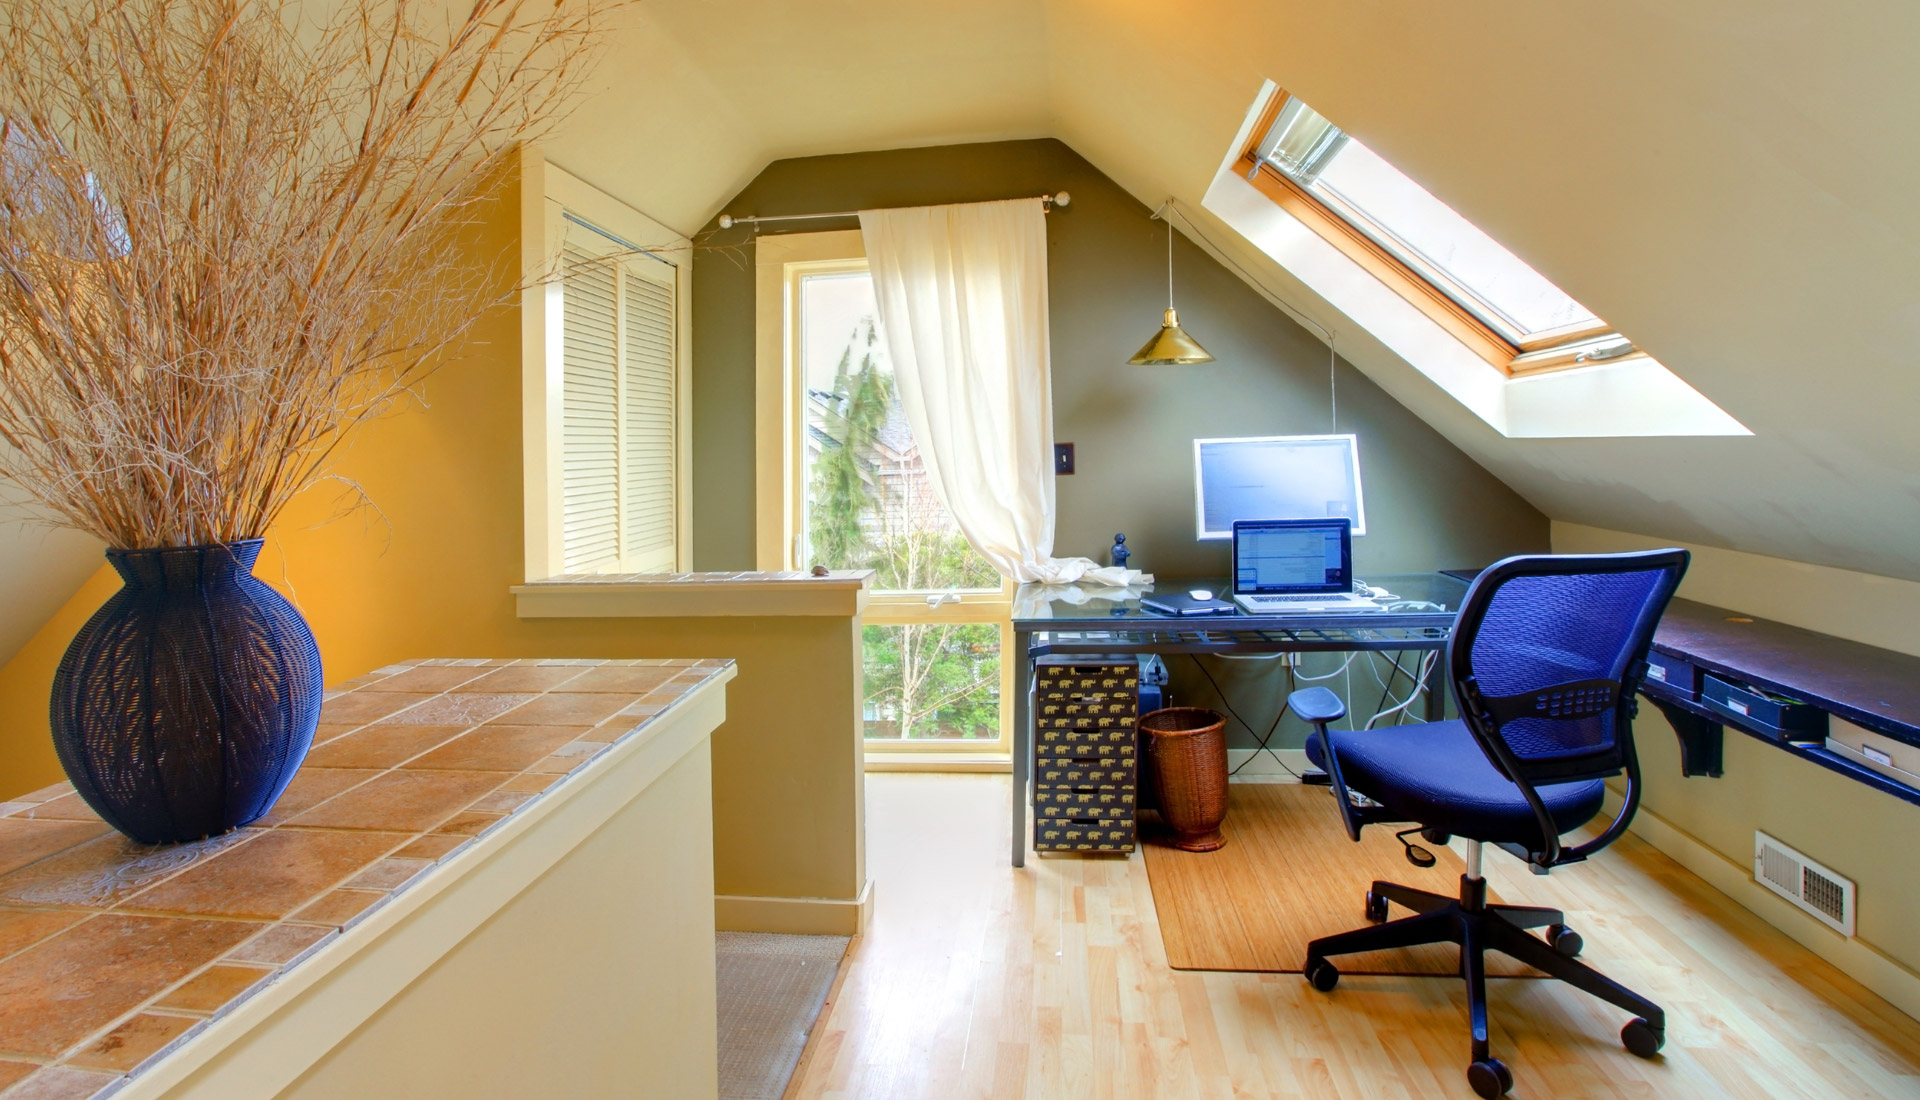 Featured Image of Attic Interior Remodel To Modern Workplace